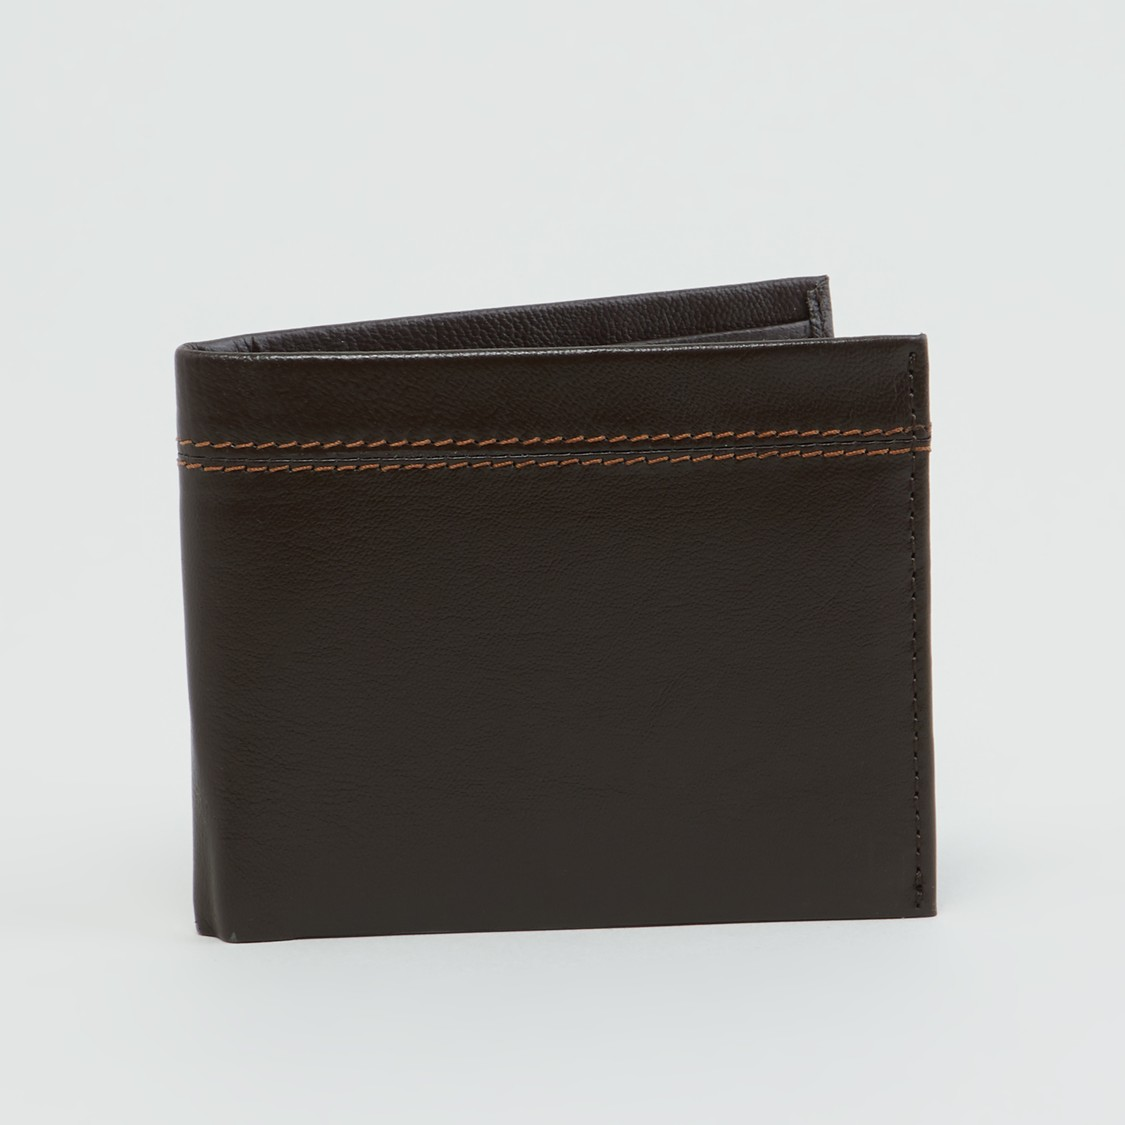 Stitch Detail Bi-Fold Wallet with Multiple Cardholders